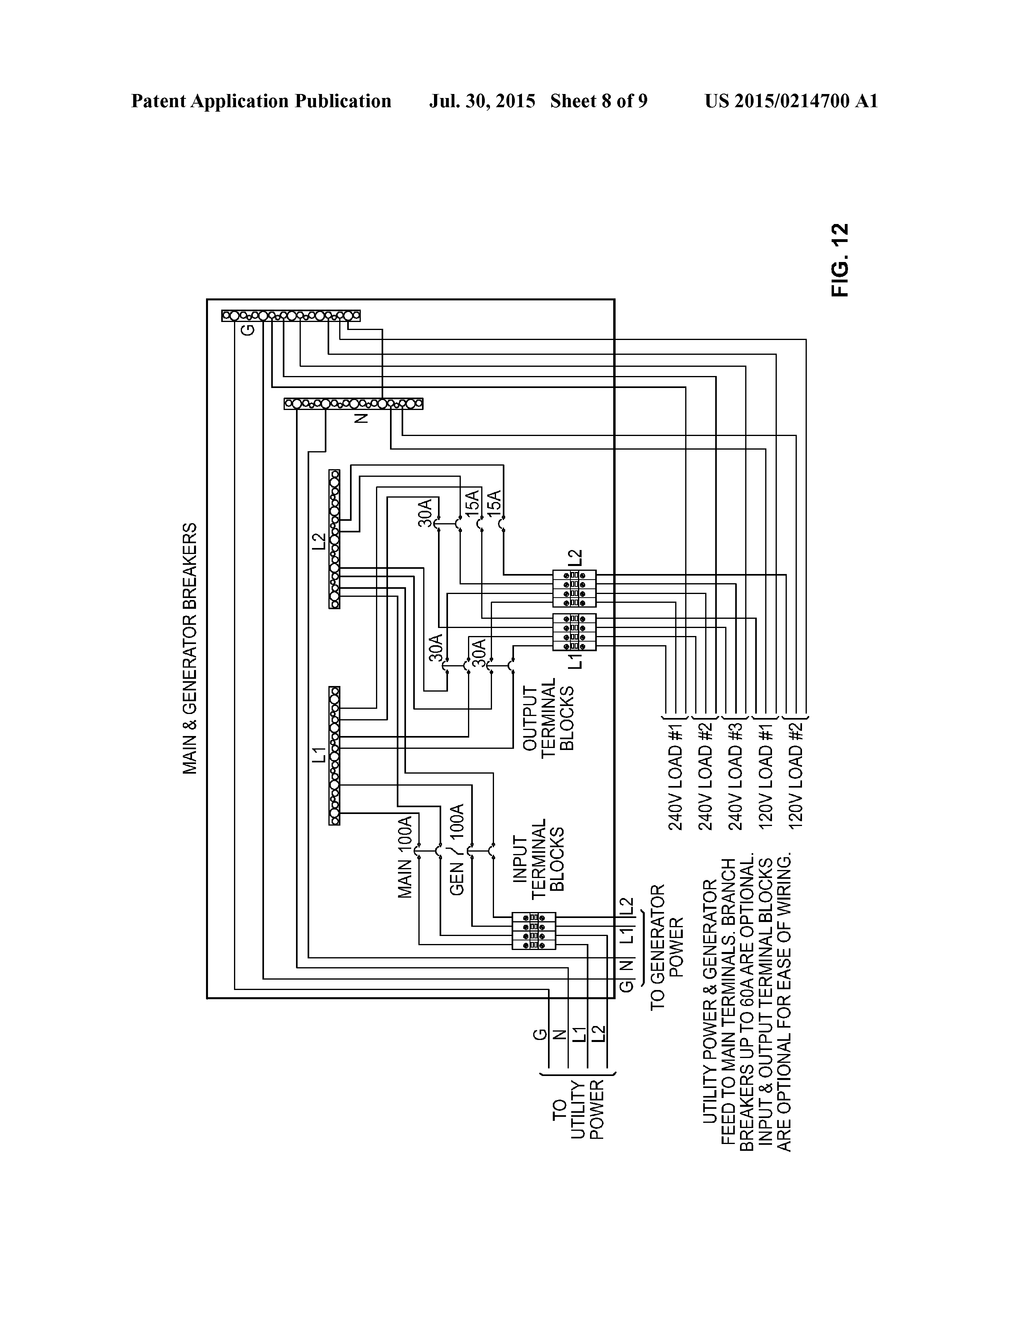 Ac Circuit Breaker Panels And Telecommunications Equipment Cabinets Figure 1 A 240v Panel Having Diagram Schematic Image 09